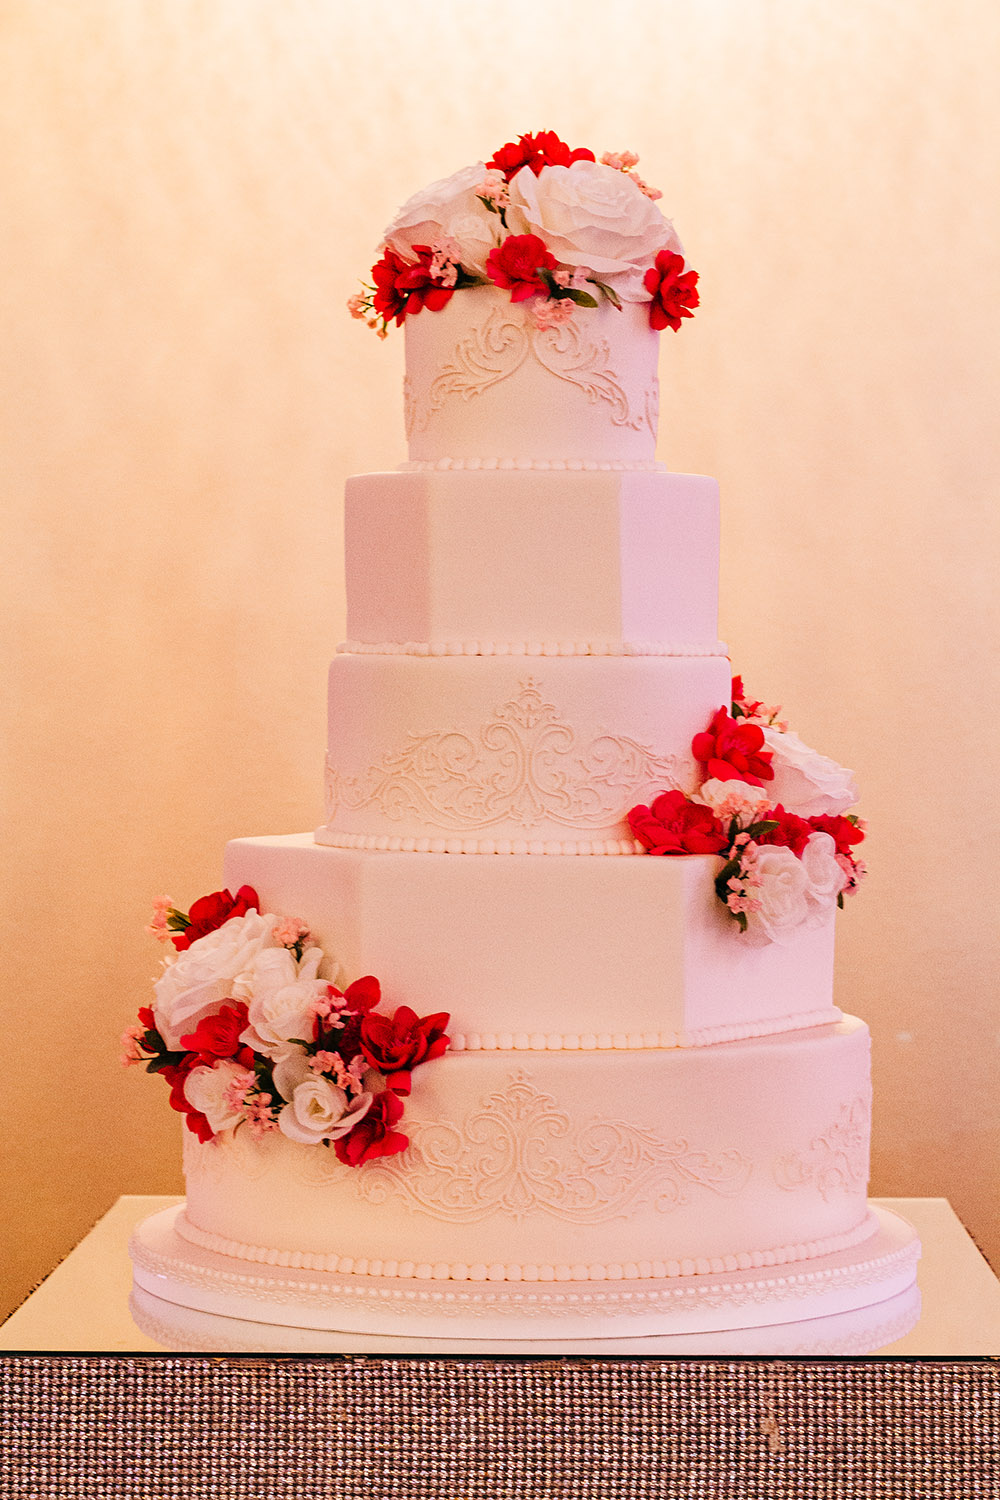 Fondant Wedding Cake With Round And Hexagon Tiers By Kimbla's Cakes